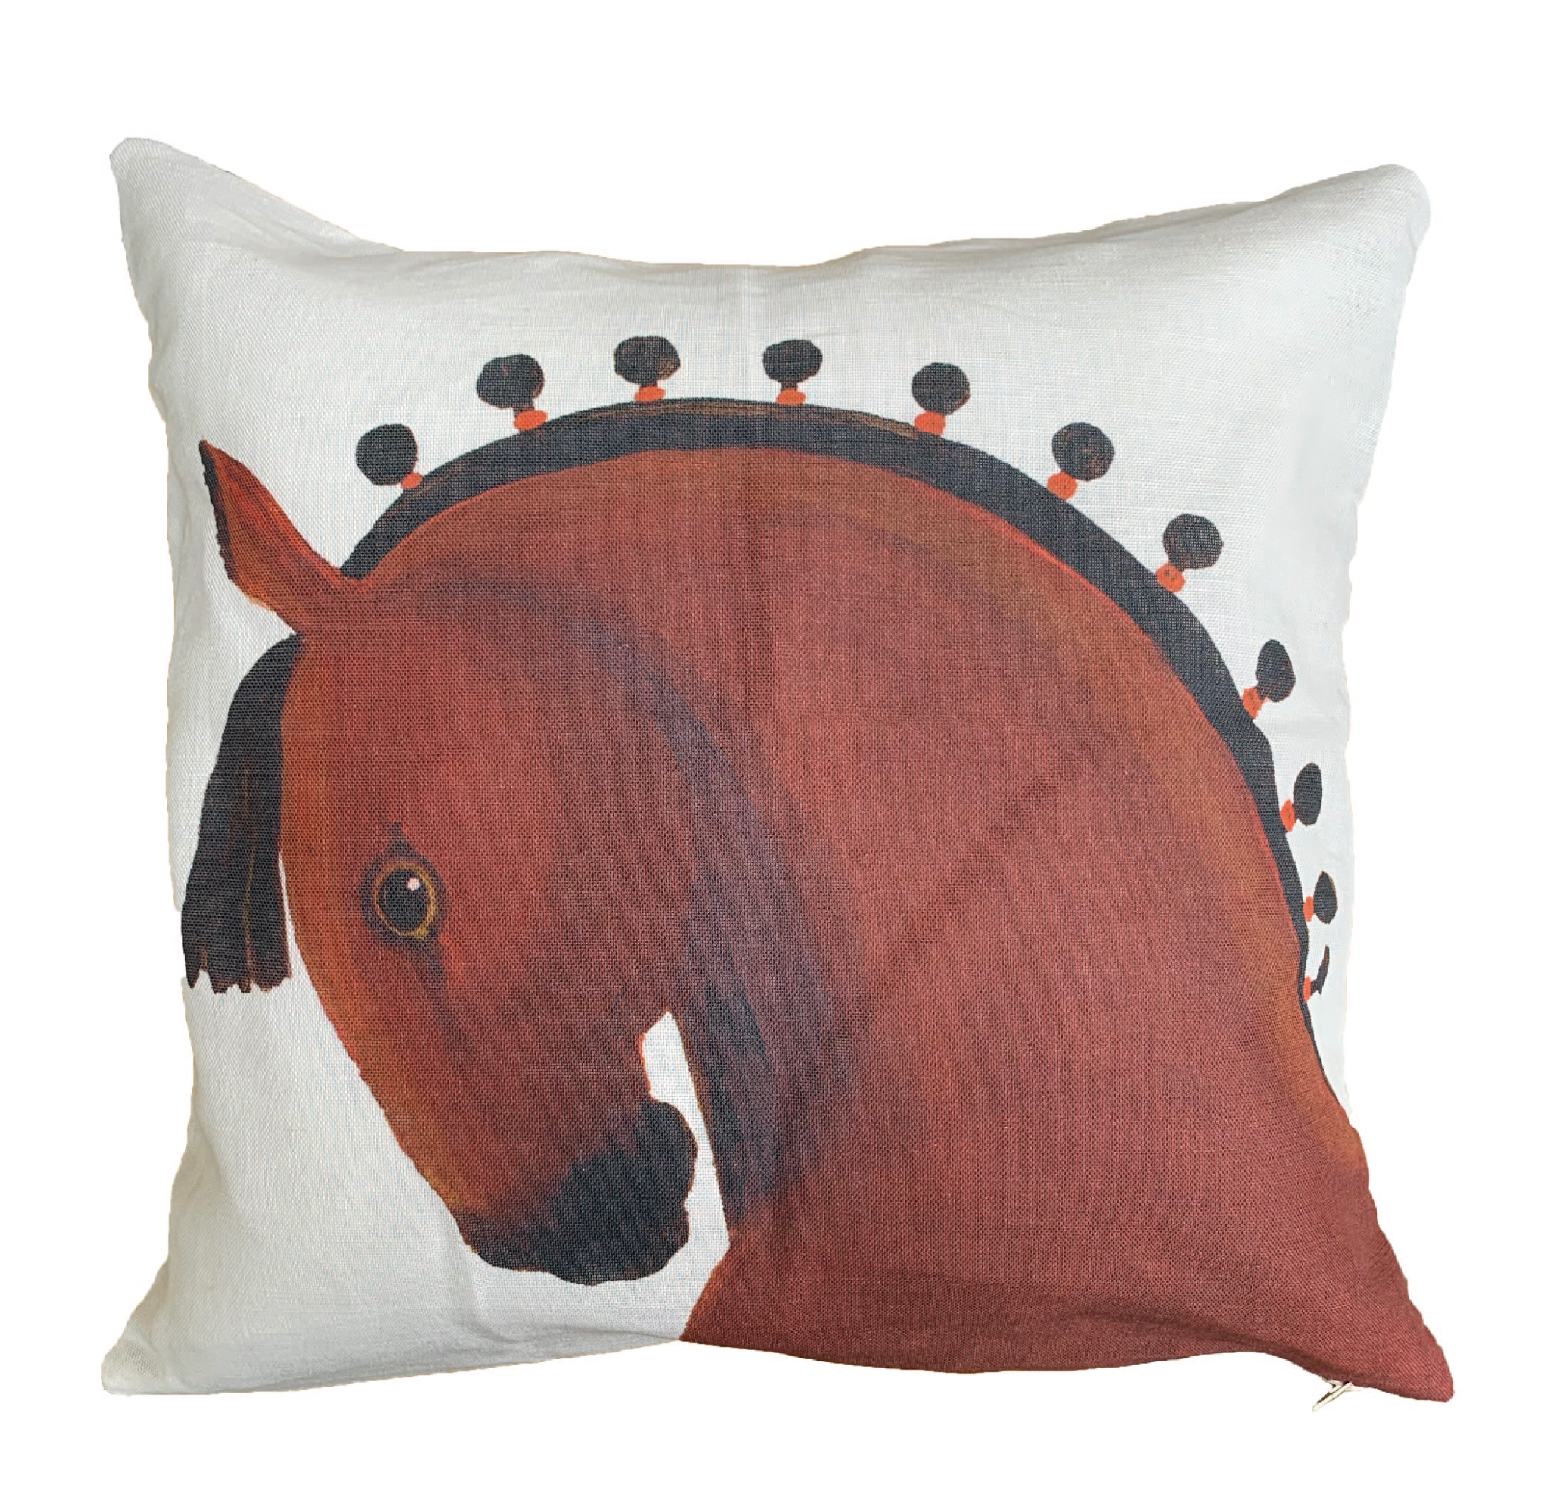 Handsome Horse Cushion